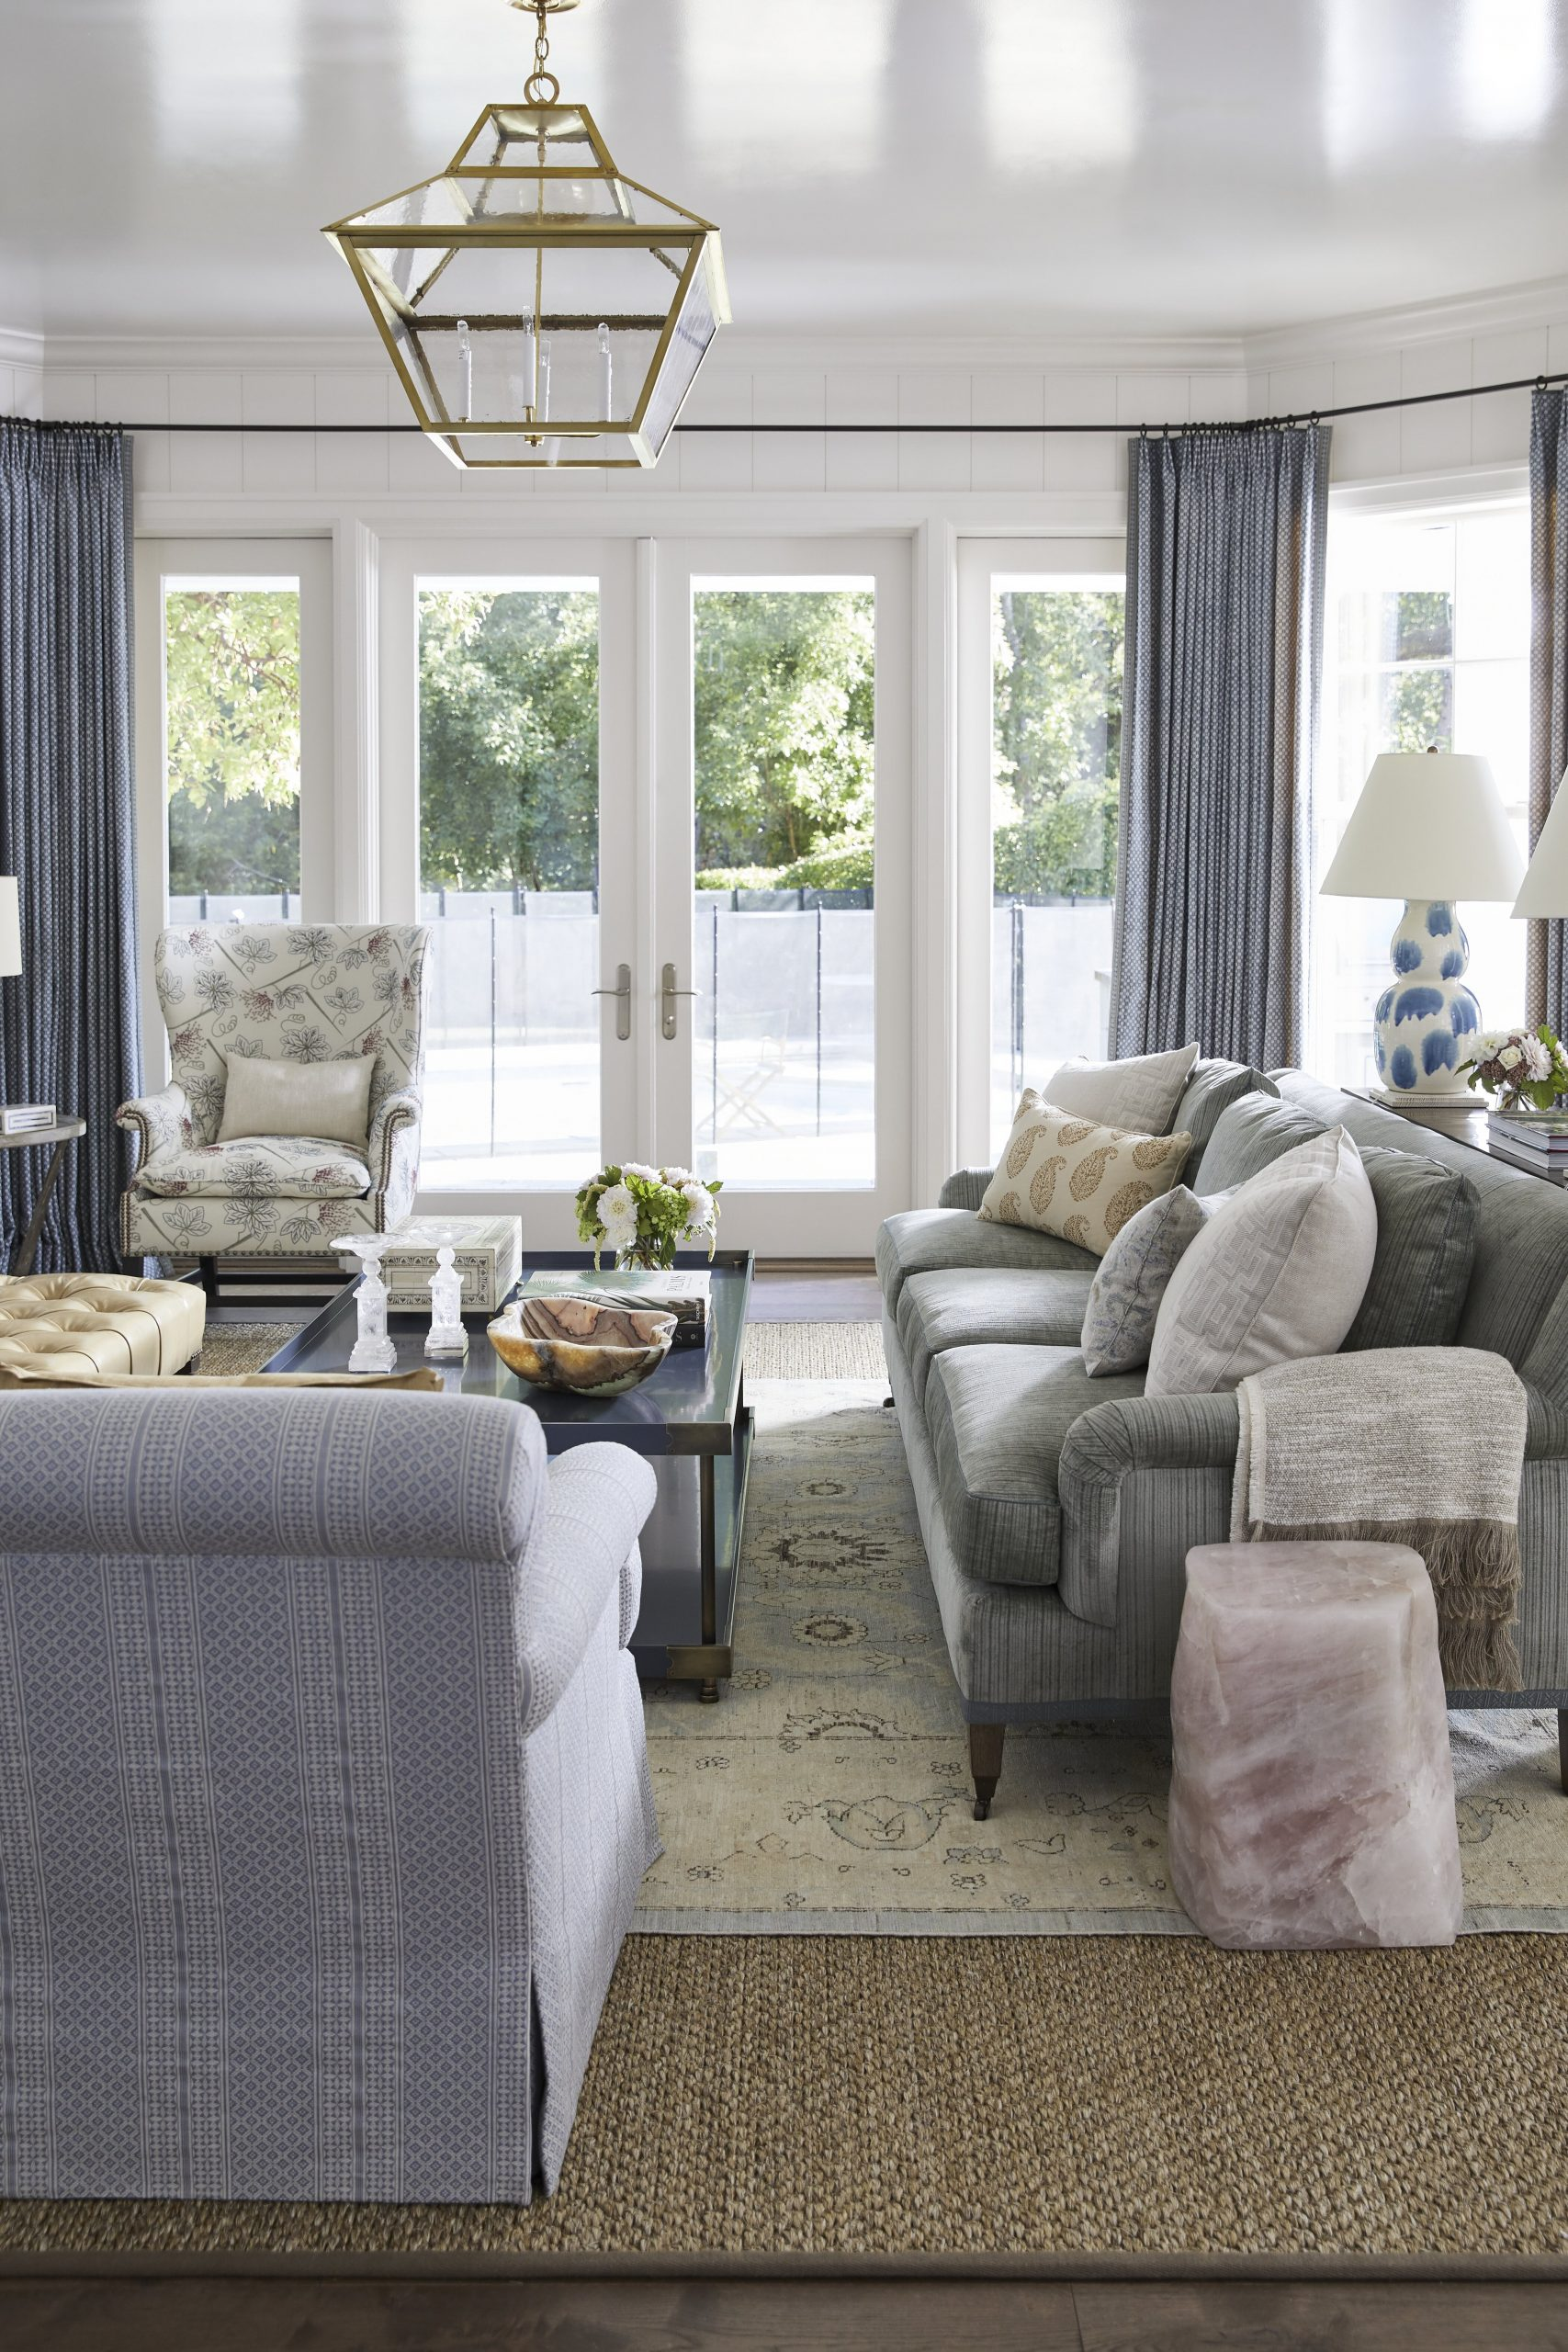 Living room with multiple style upholstered sofas and chairs